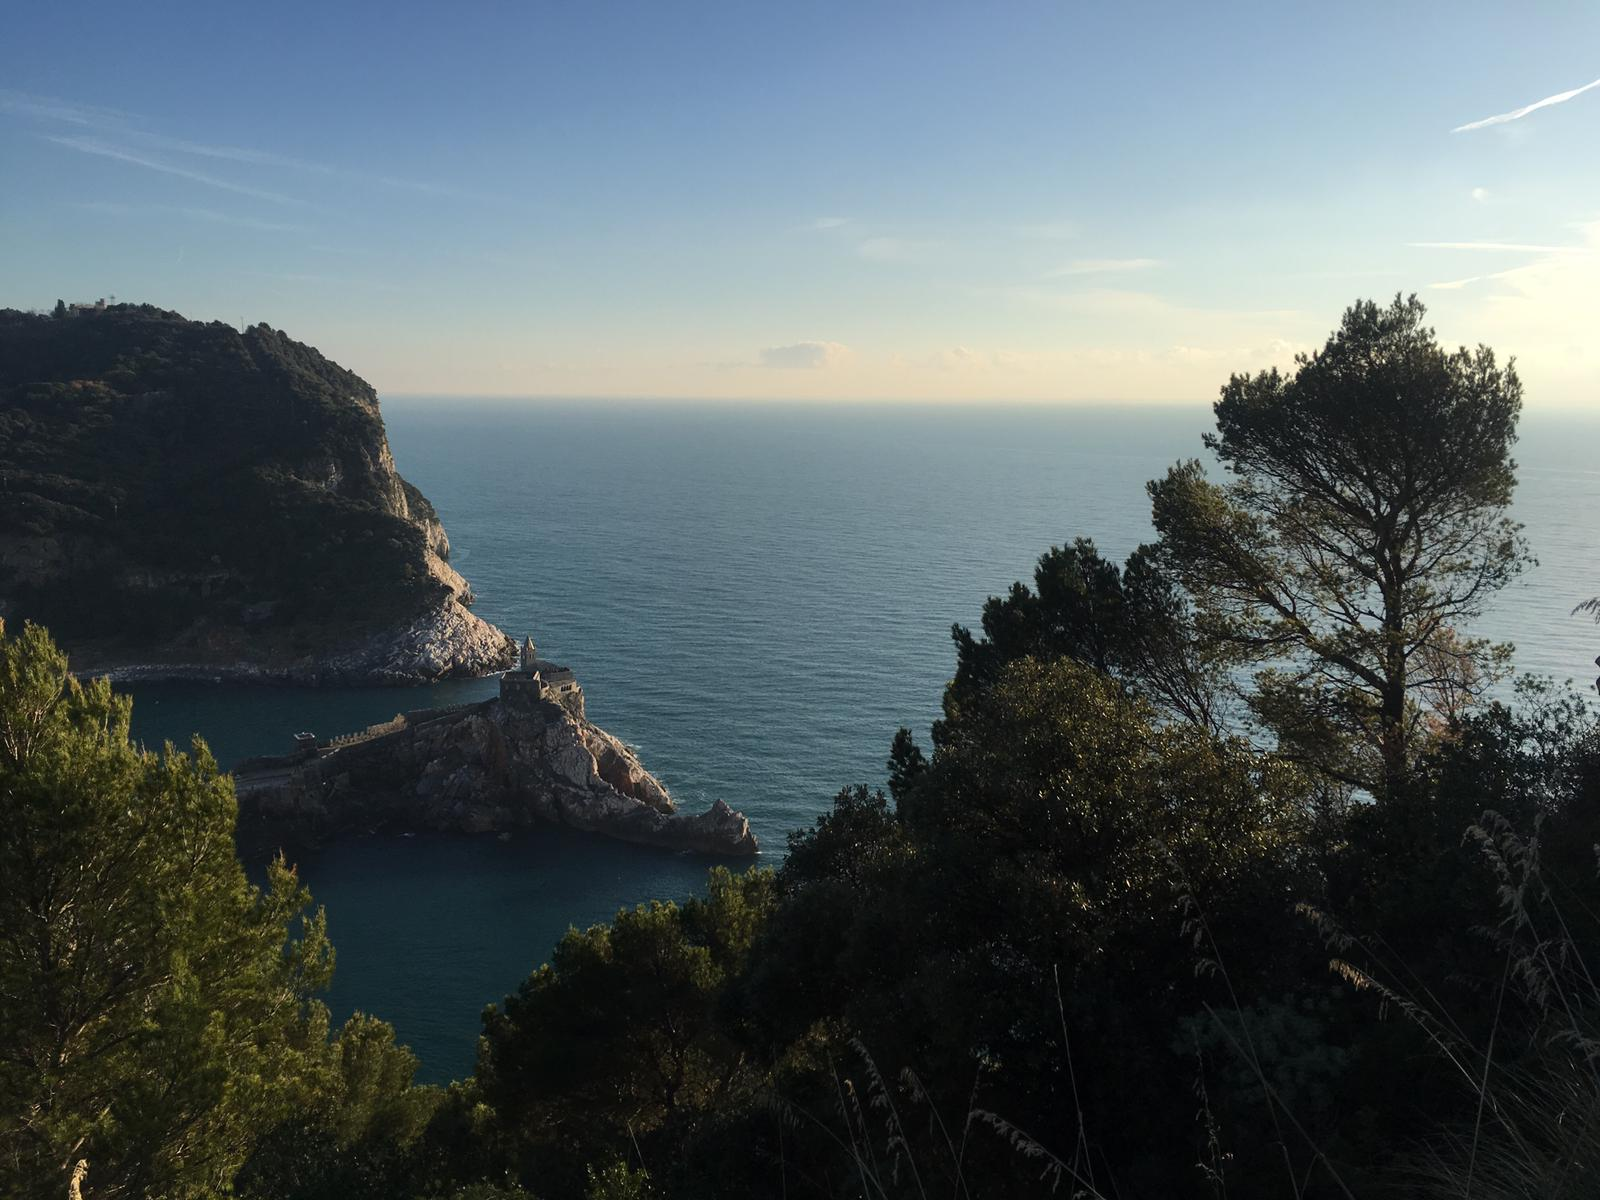 OUR NEW YEAR'S EVE WALK LONG THE CLIFFTOPS TO THE CHURCH OF SAN PIETRO IN PORTOVENERE